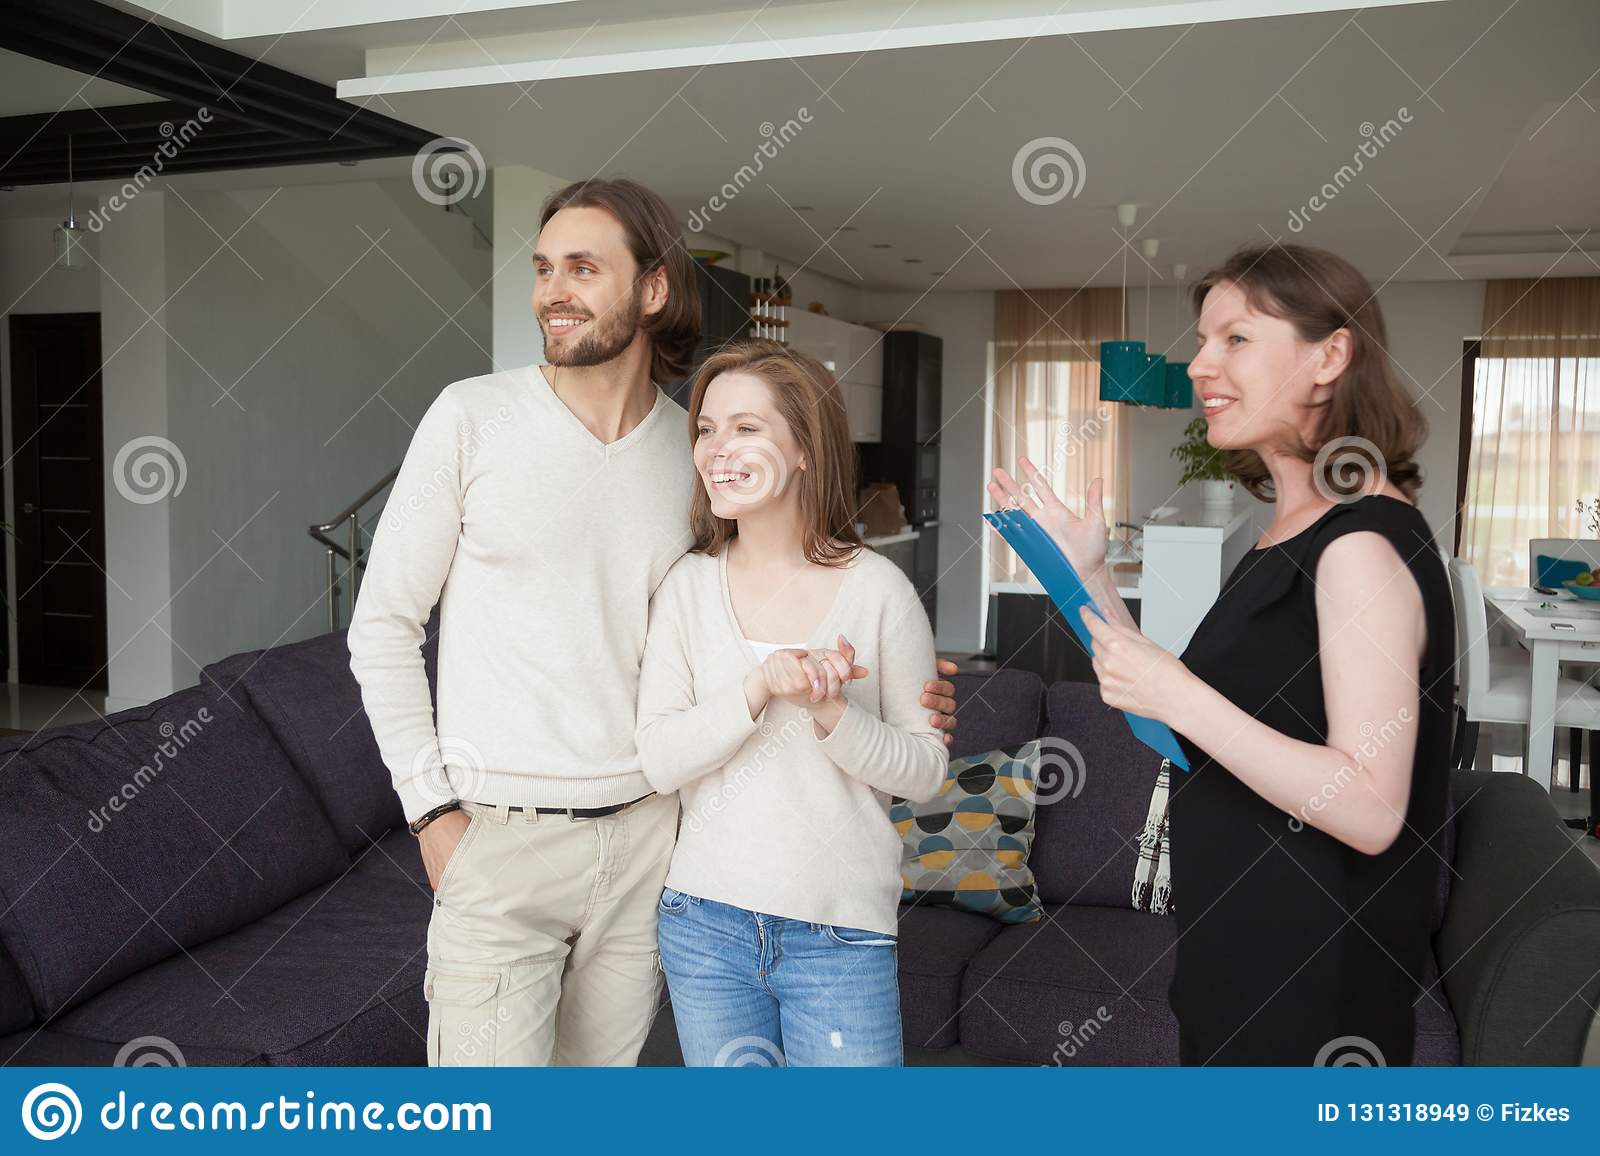 living room realtors lime green wallpaper realtor showing property for sale to young married couple stock three person standing in realestate agent house or tenant satisfied